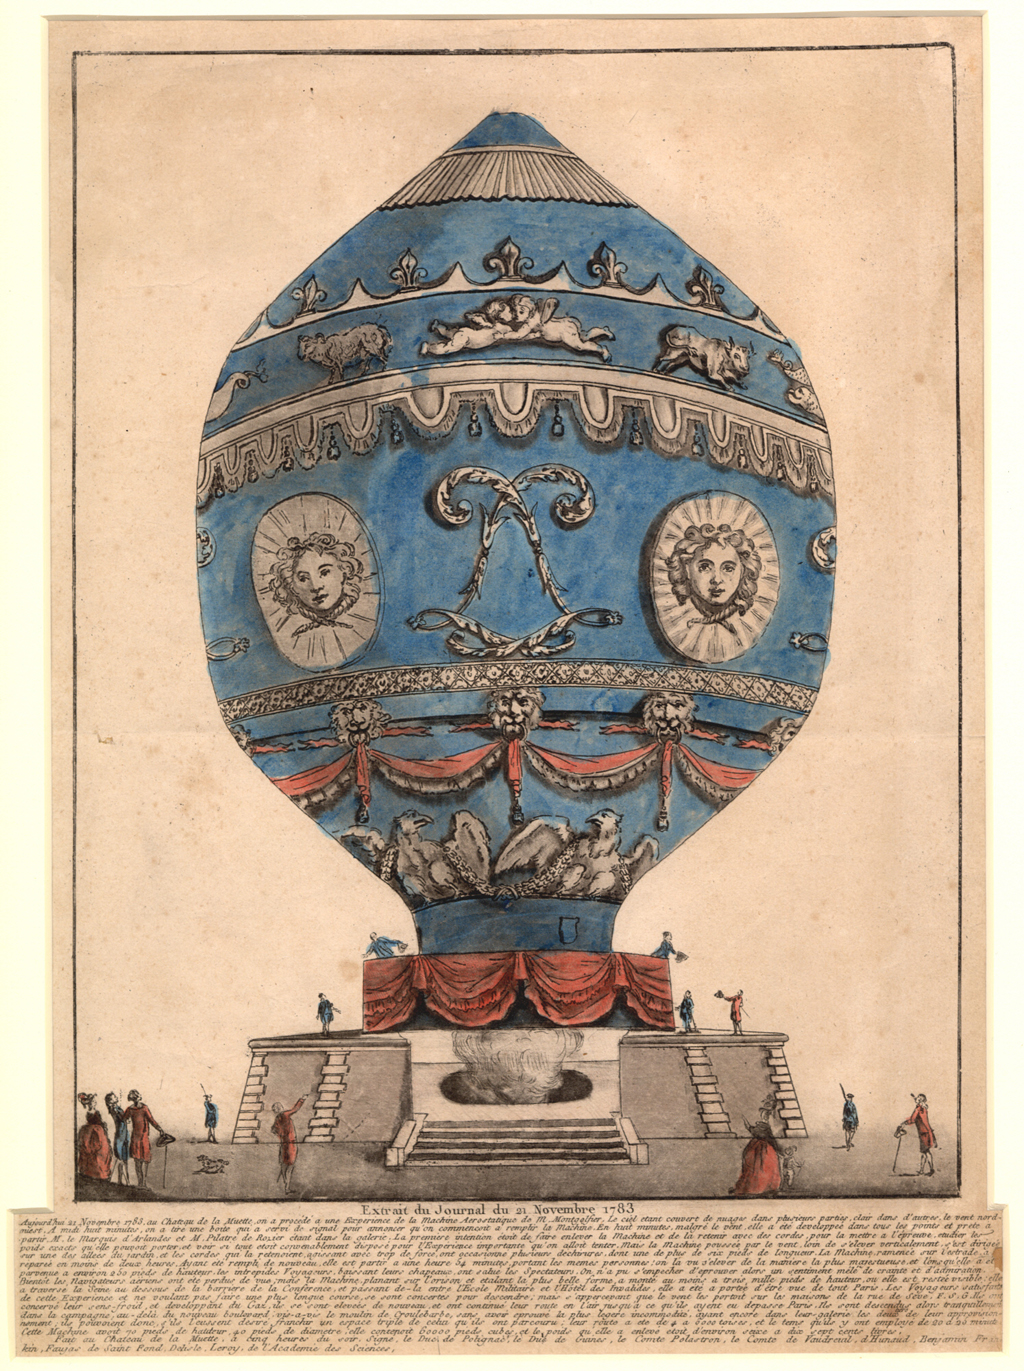 Print depicting Montgolfier balloon in which Pilätre de Rozier and François Laurent, the marquis d'Arlandes, became the first human beings to make an ascent. From airandspace.si.edu via Pinterest.